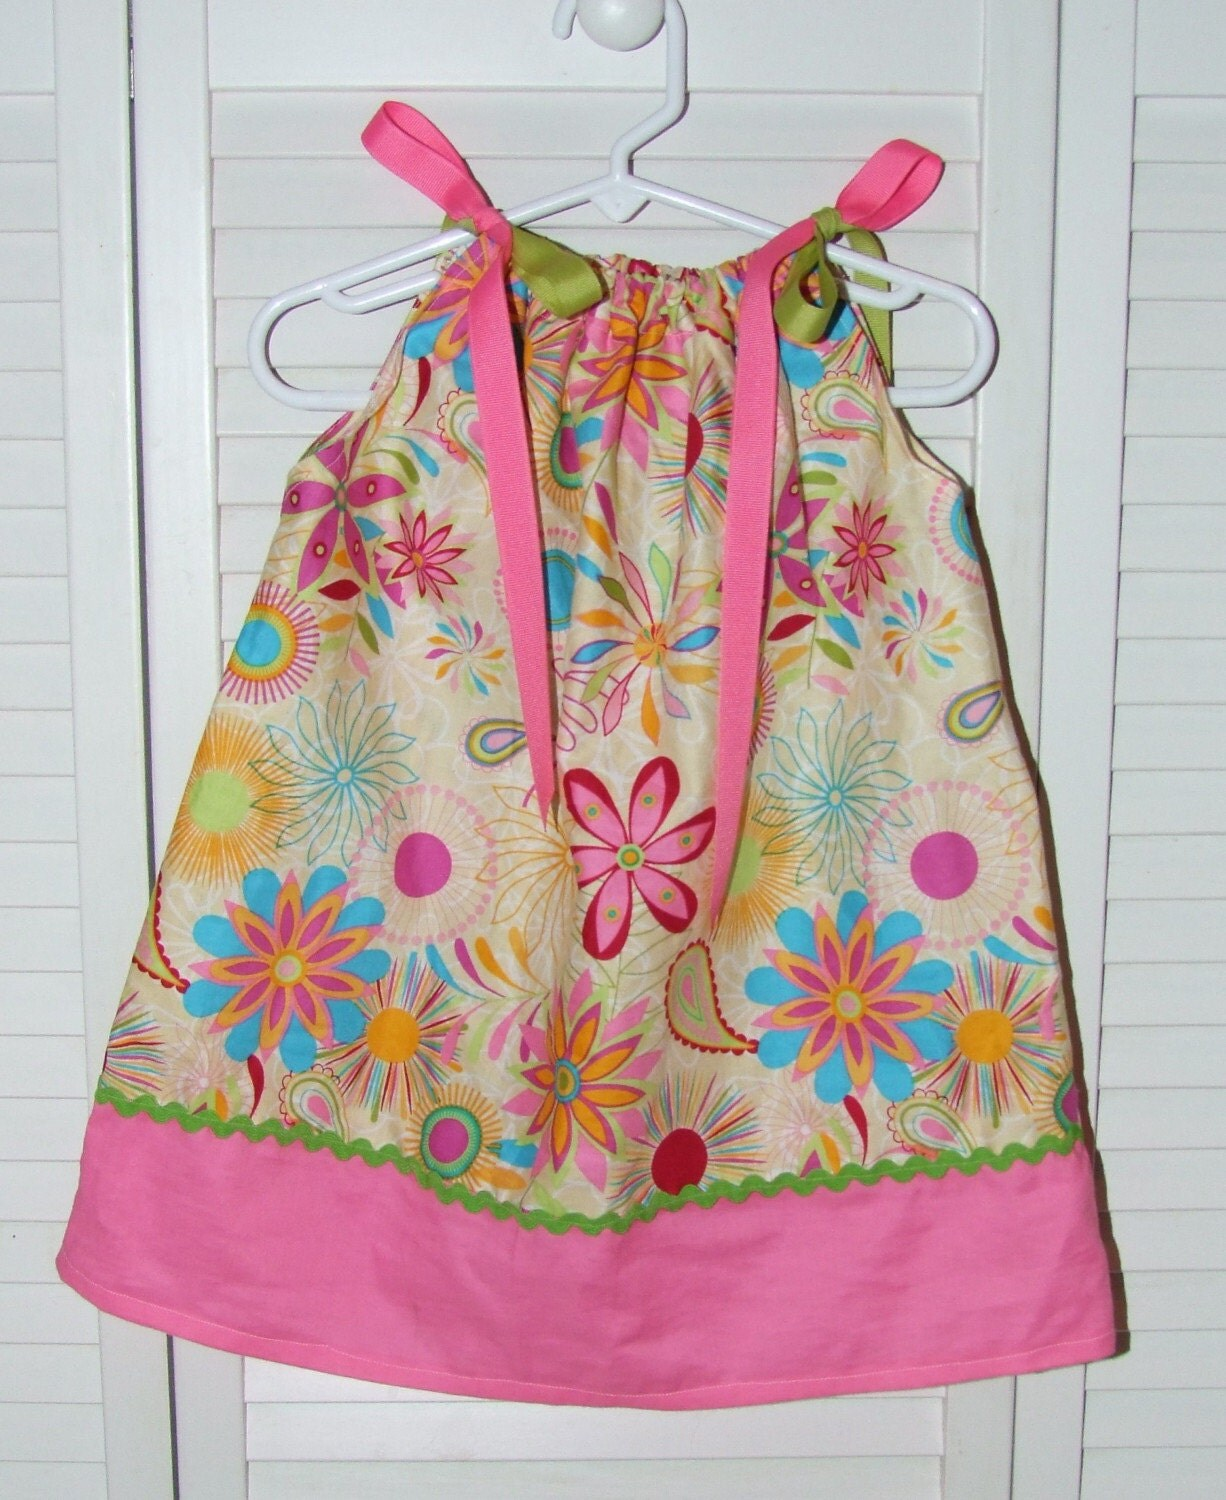 Yellow flowers/hot pink pillowcase dress size 2T/24 months READY TO SHIP